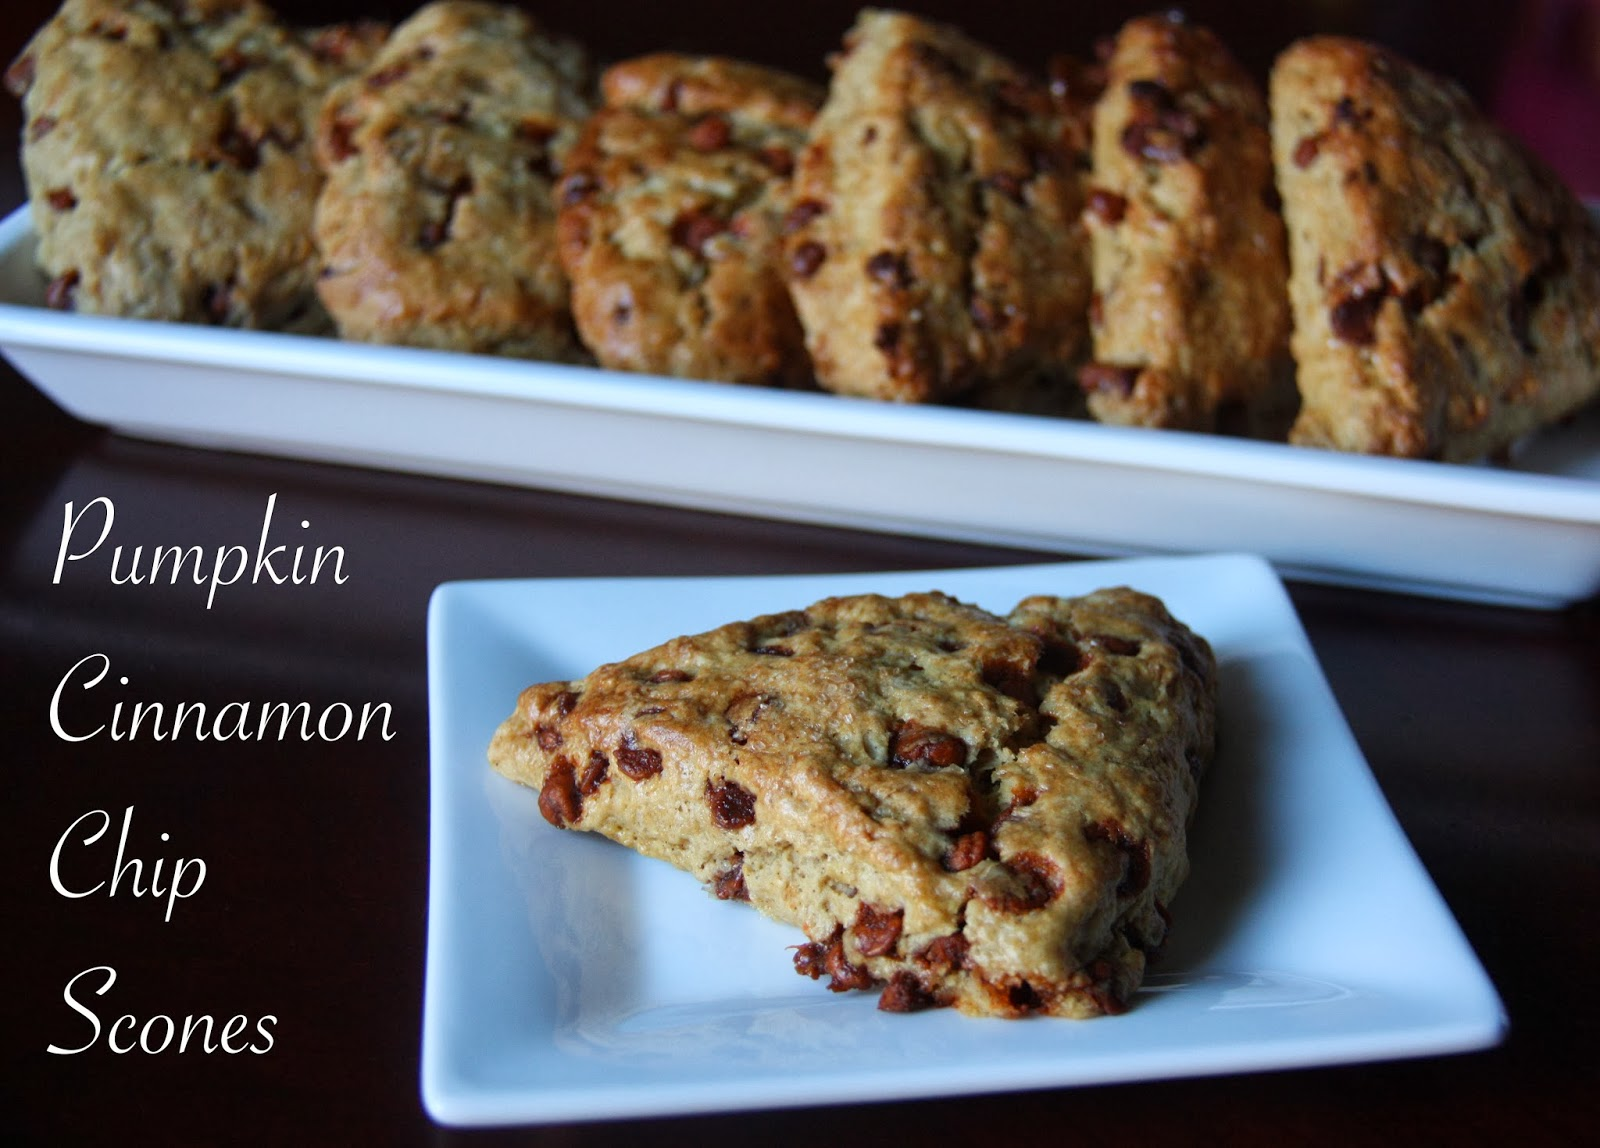 Pumpkin Cinnamon Chip Scones